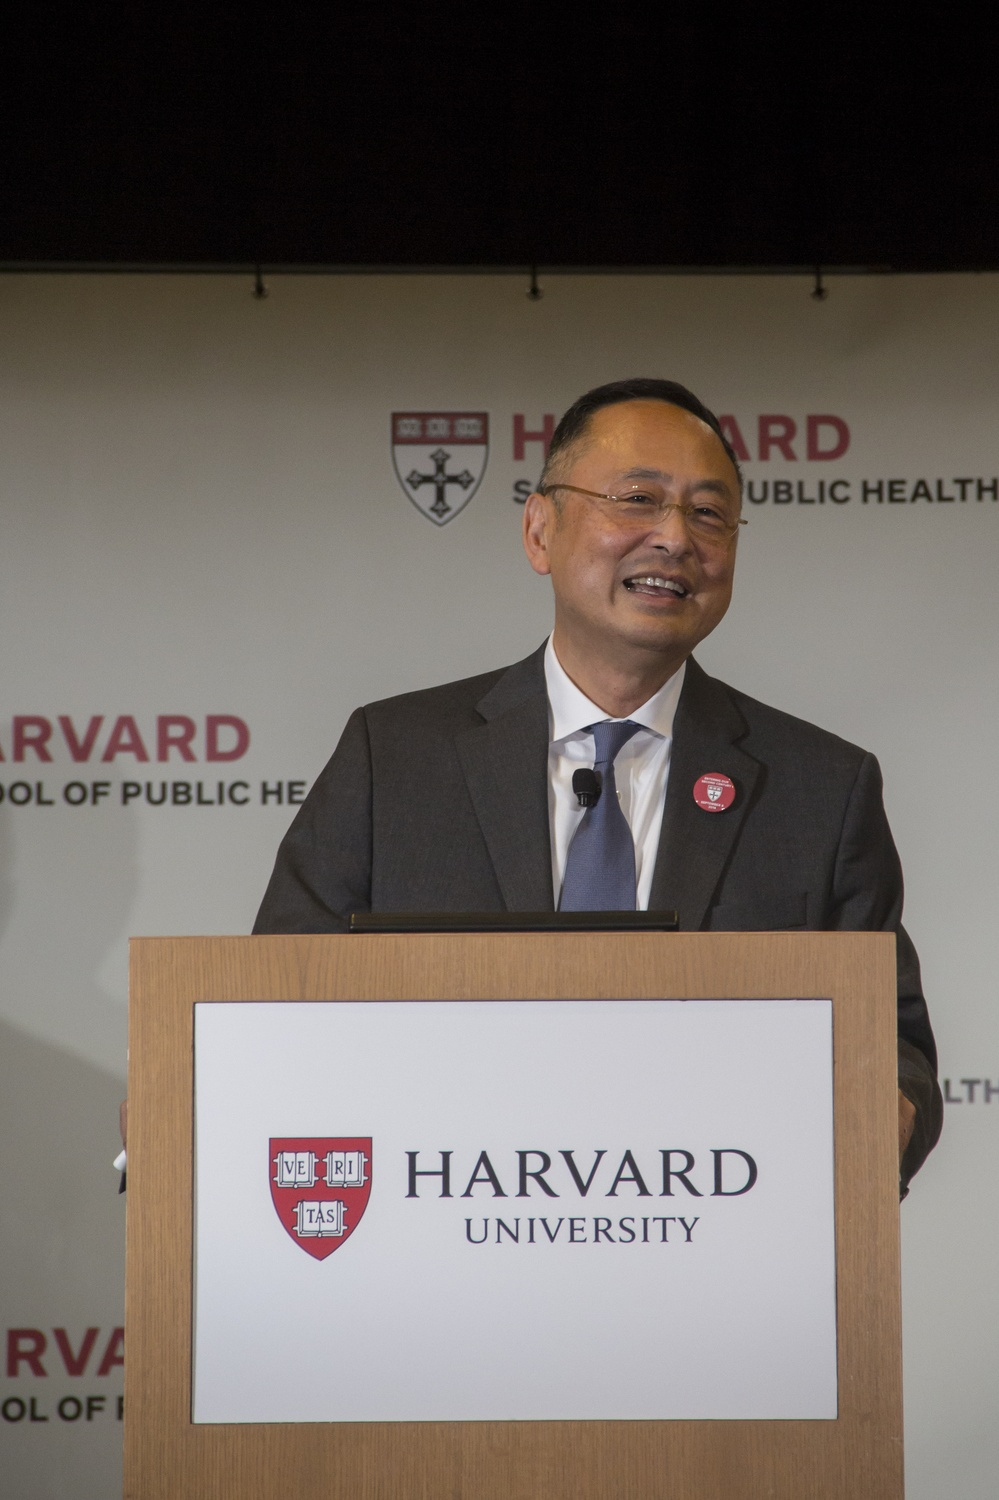 Gerald L. Chan speaks at the Harvard School of Public Health in September 2014 following the announcement that he had pledged $350 million to the school.